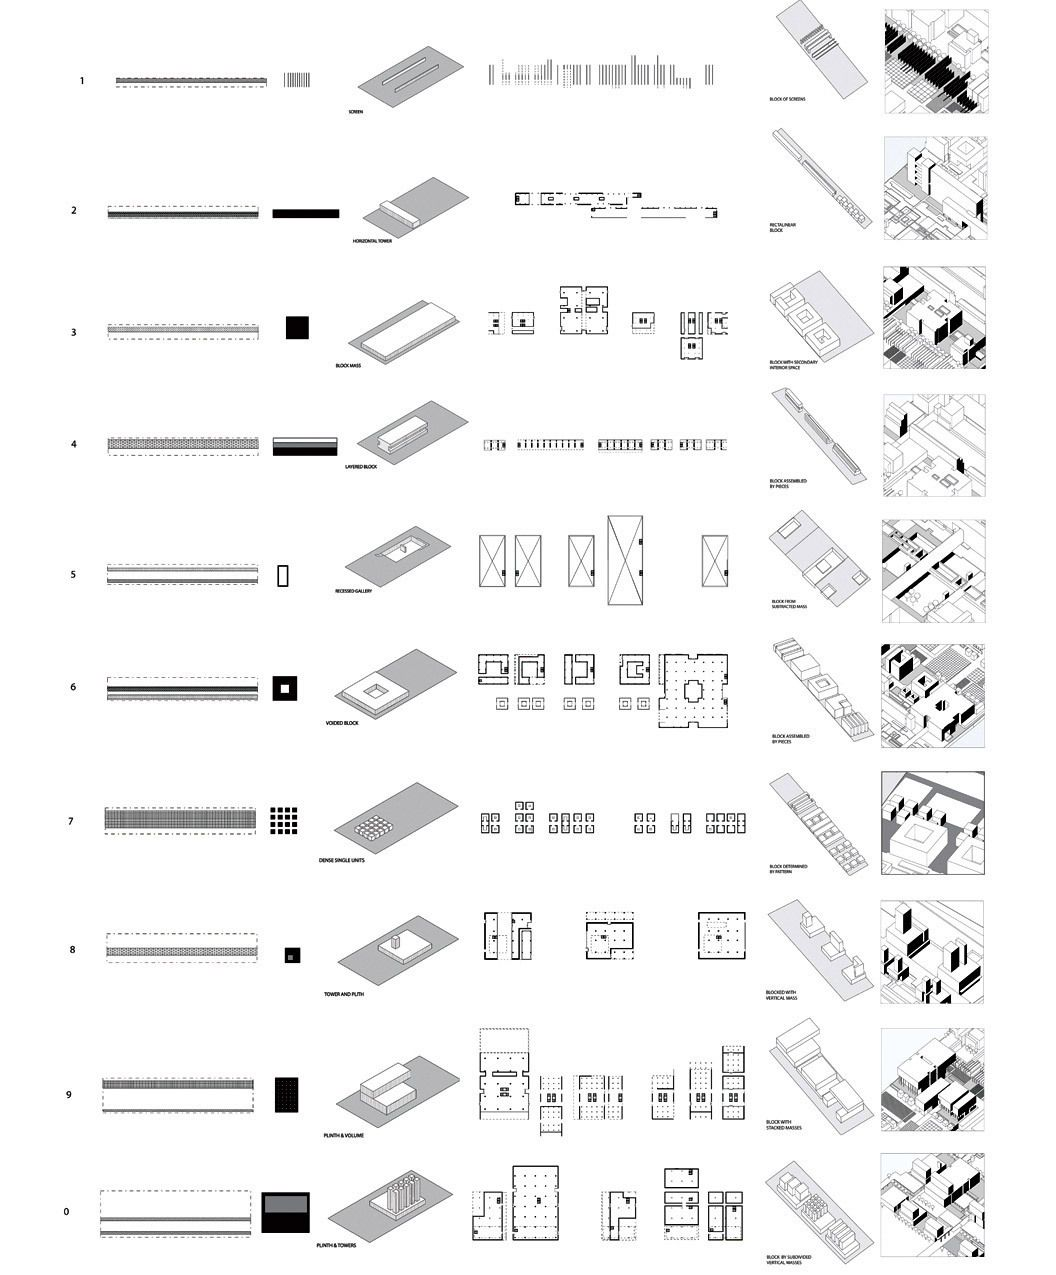 Architectural Diagram Types 2006 Ford F150 Starter Wiring Ungers 2 Building Typology Diagrams